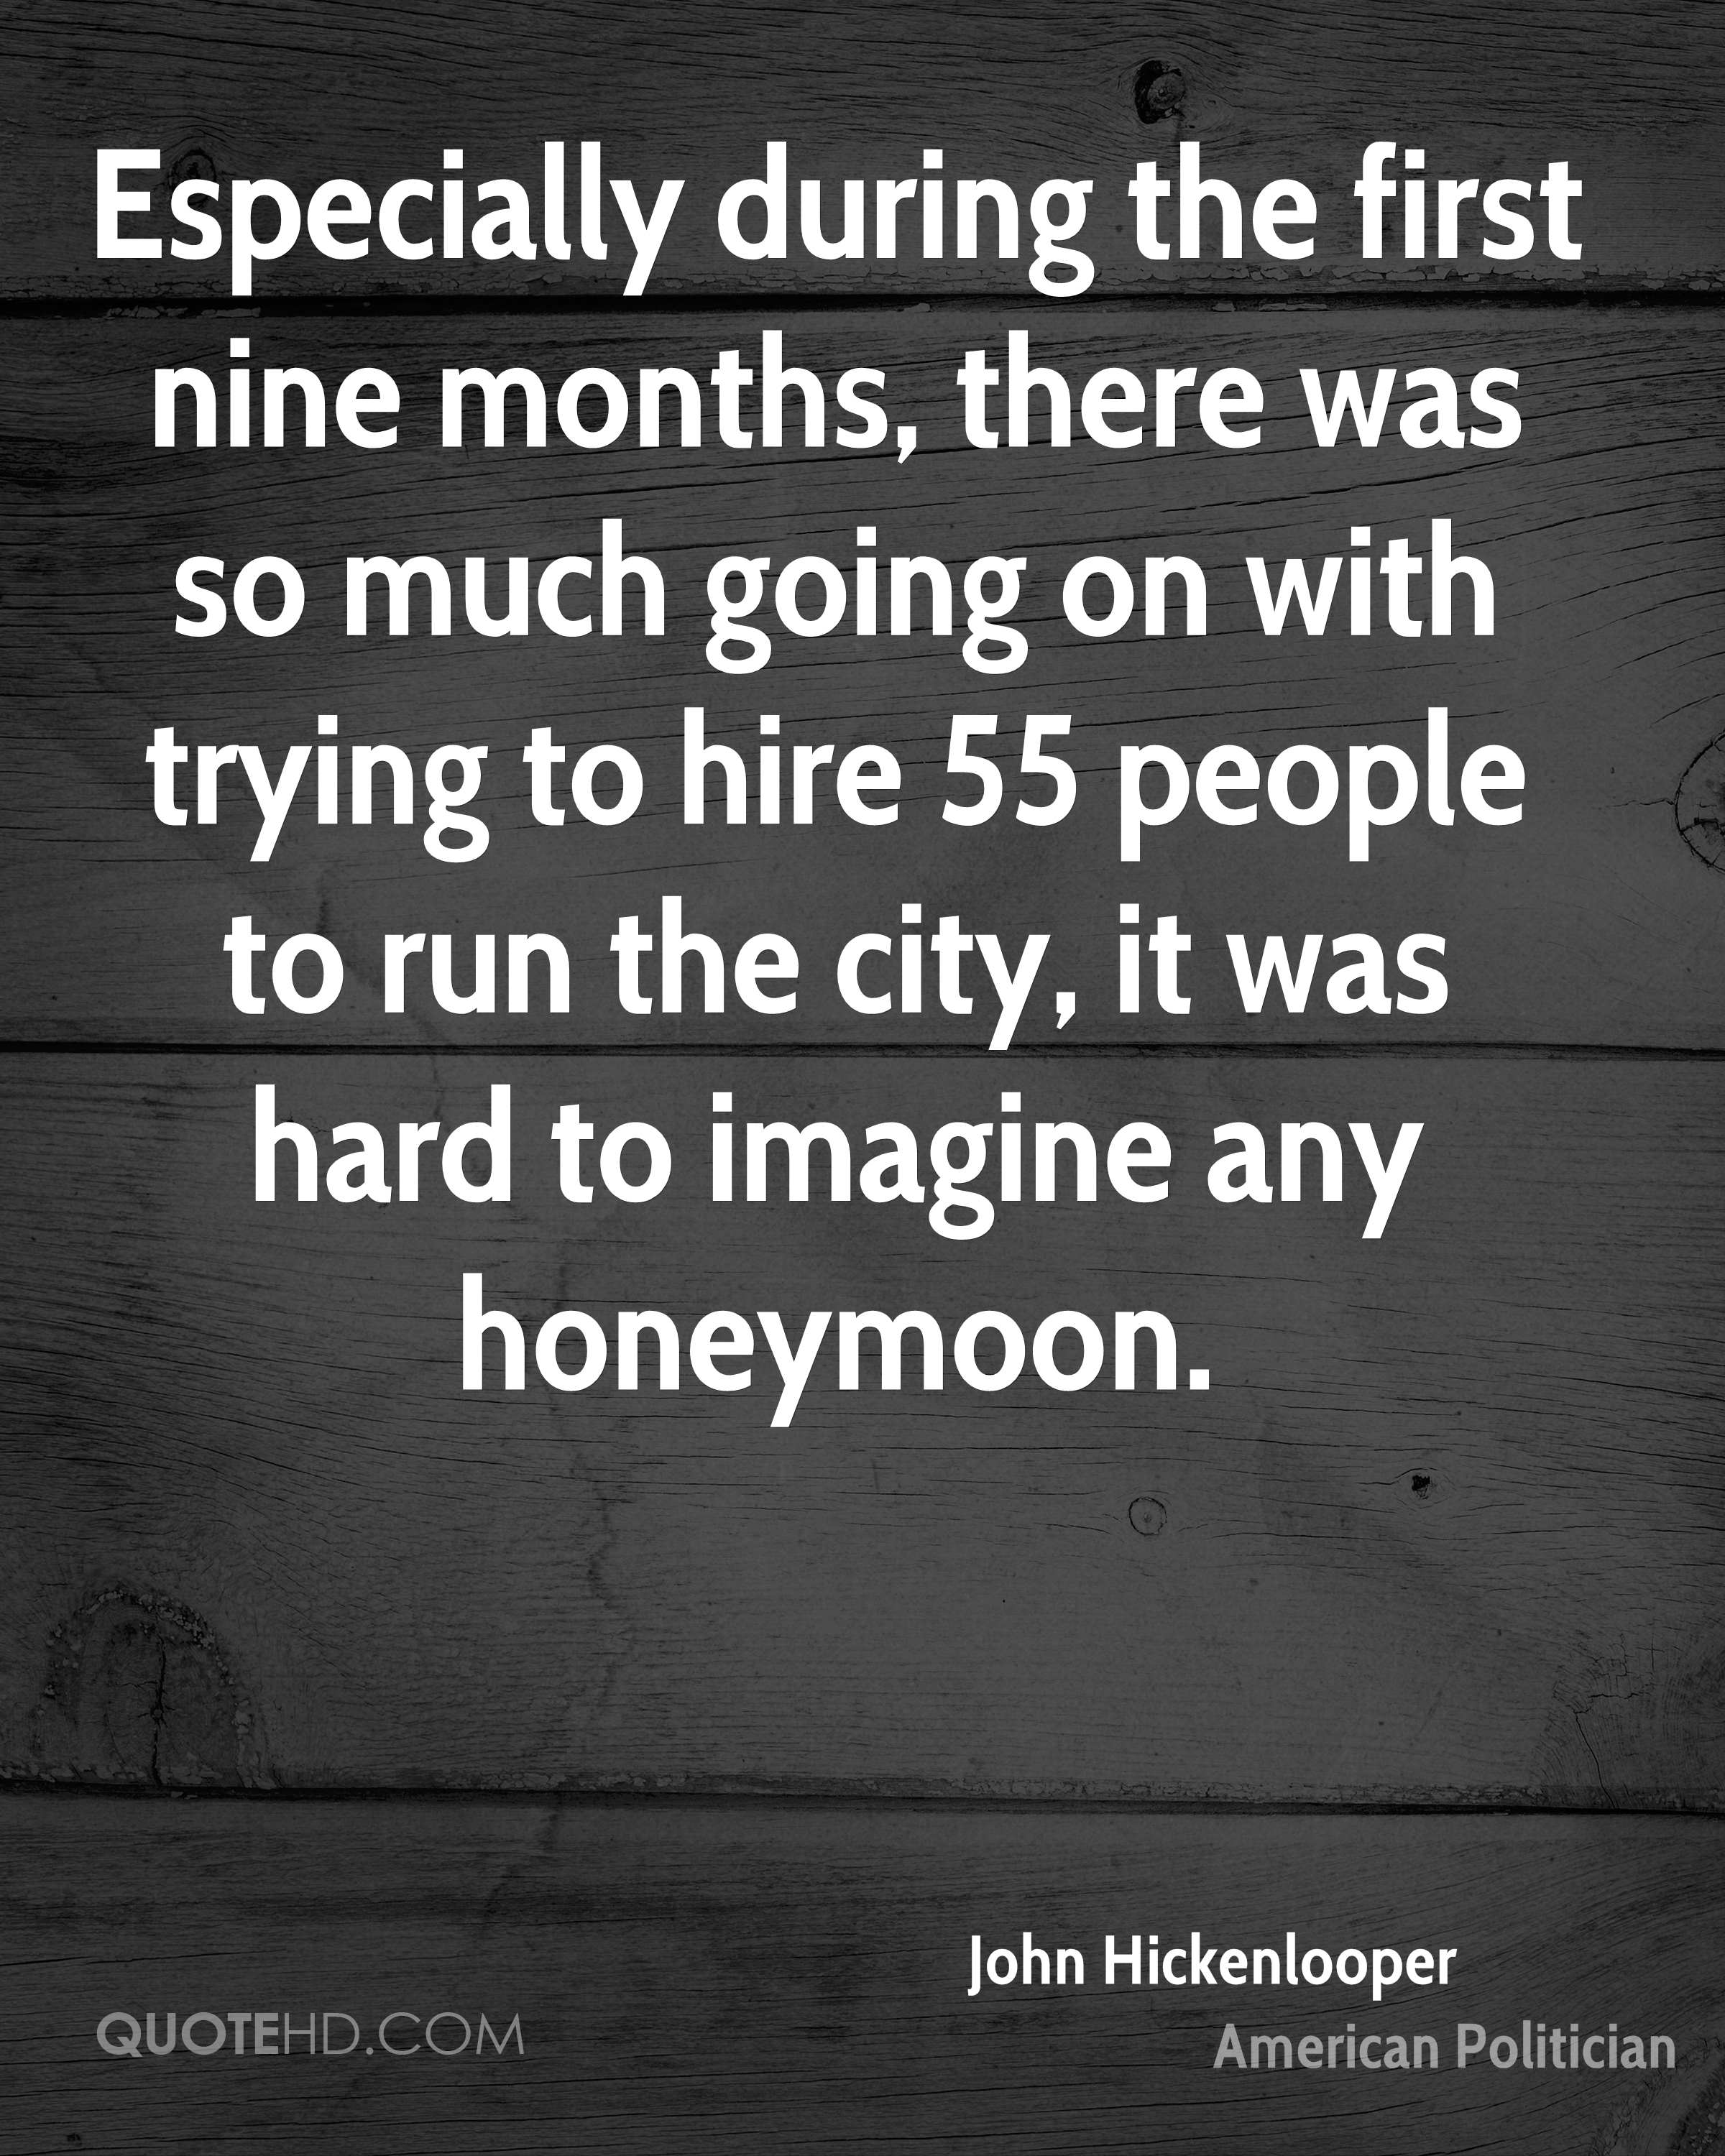 Especially during the first nine months, there was so much going on with trying to hire 55 people to run the city, it was hard to imagine any honeymoon.